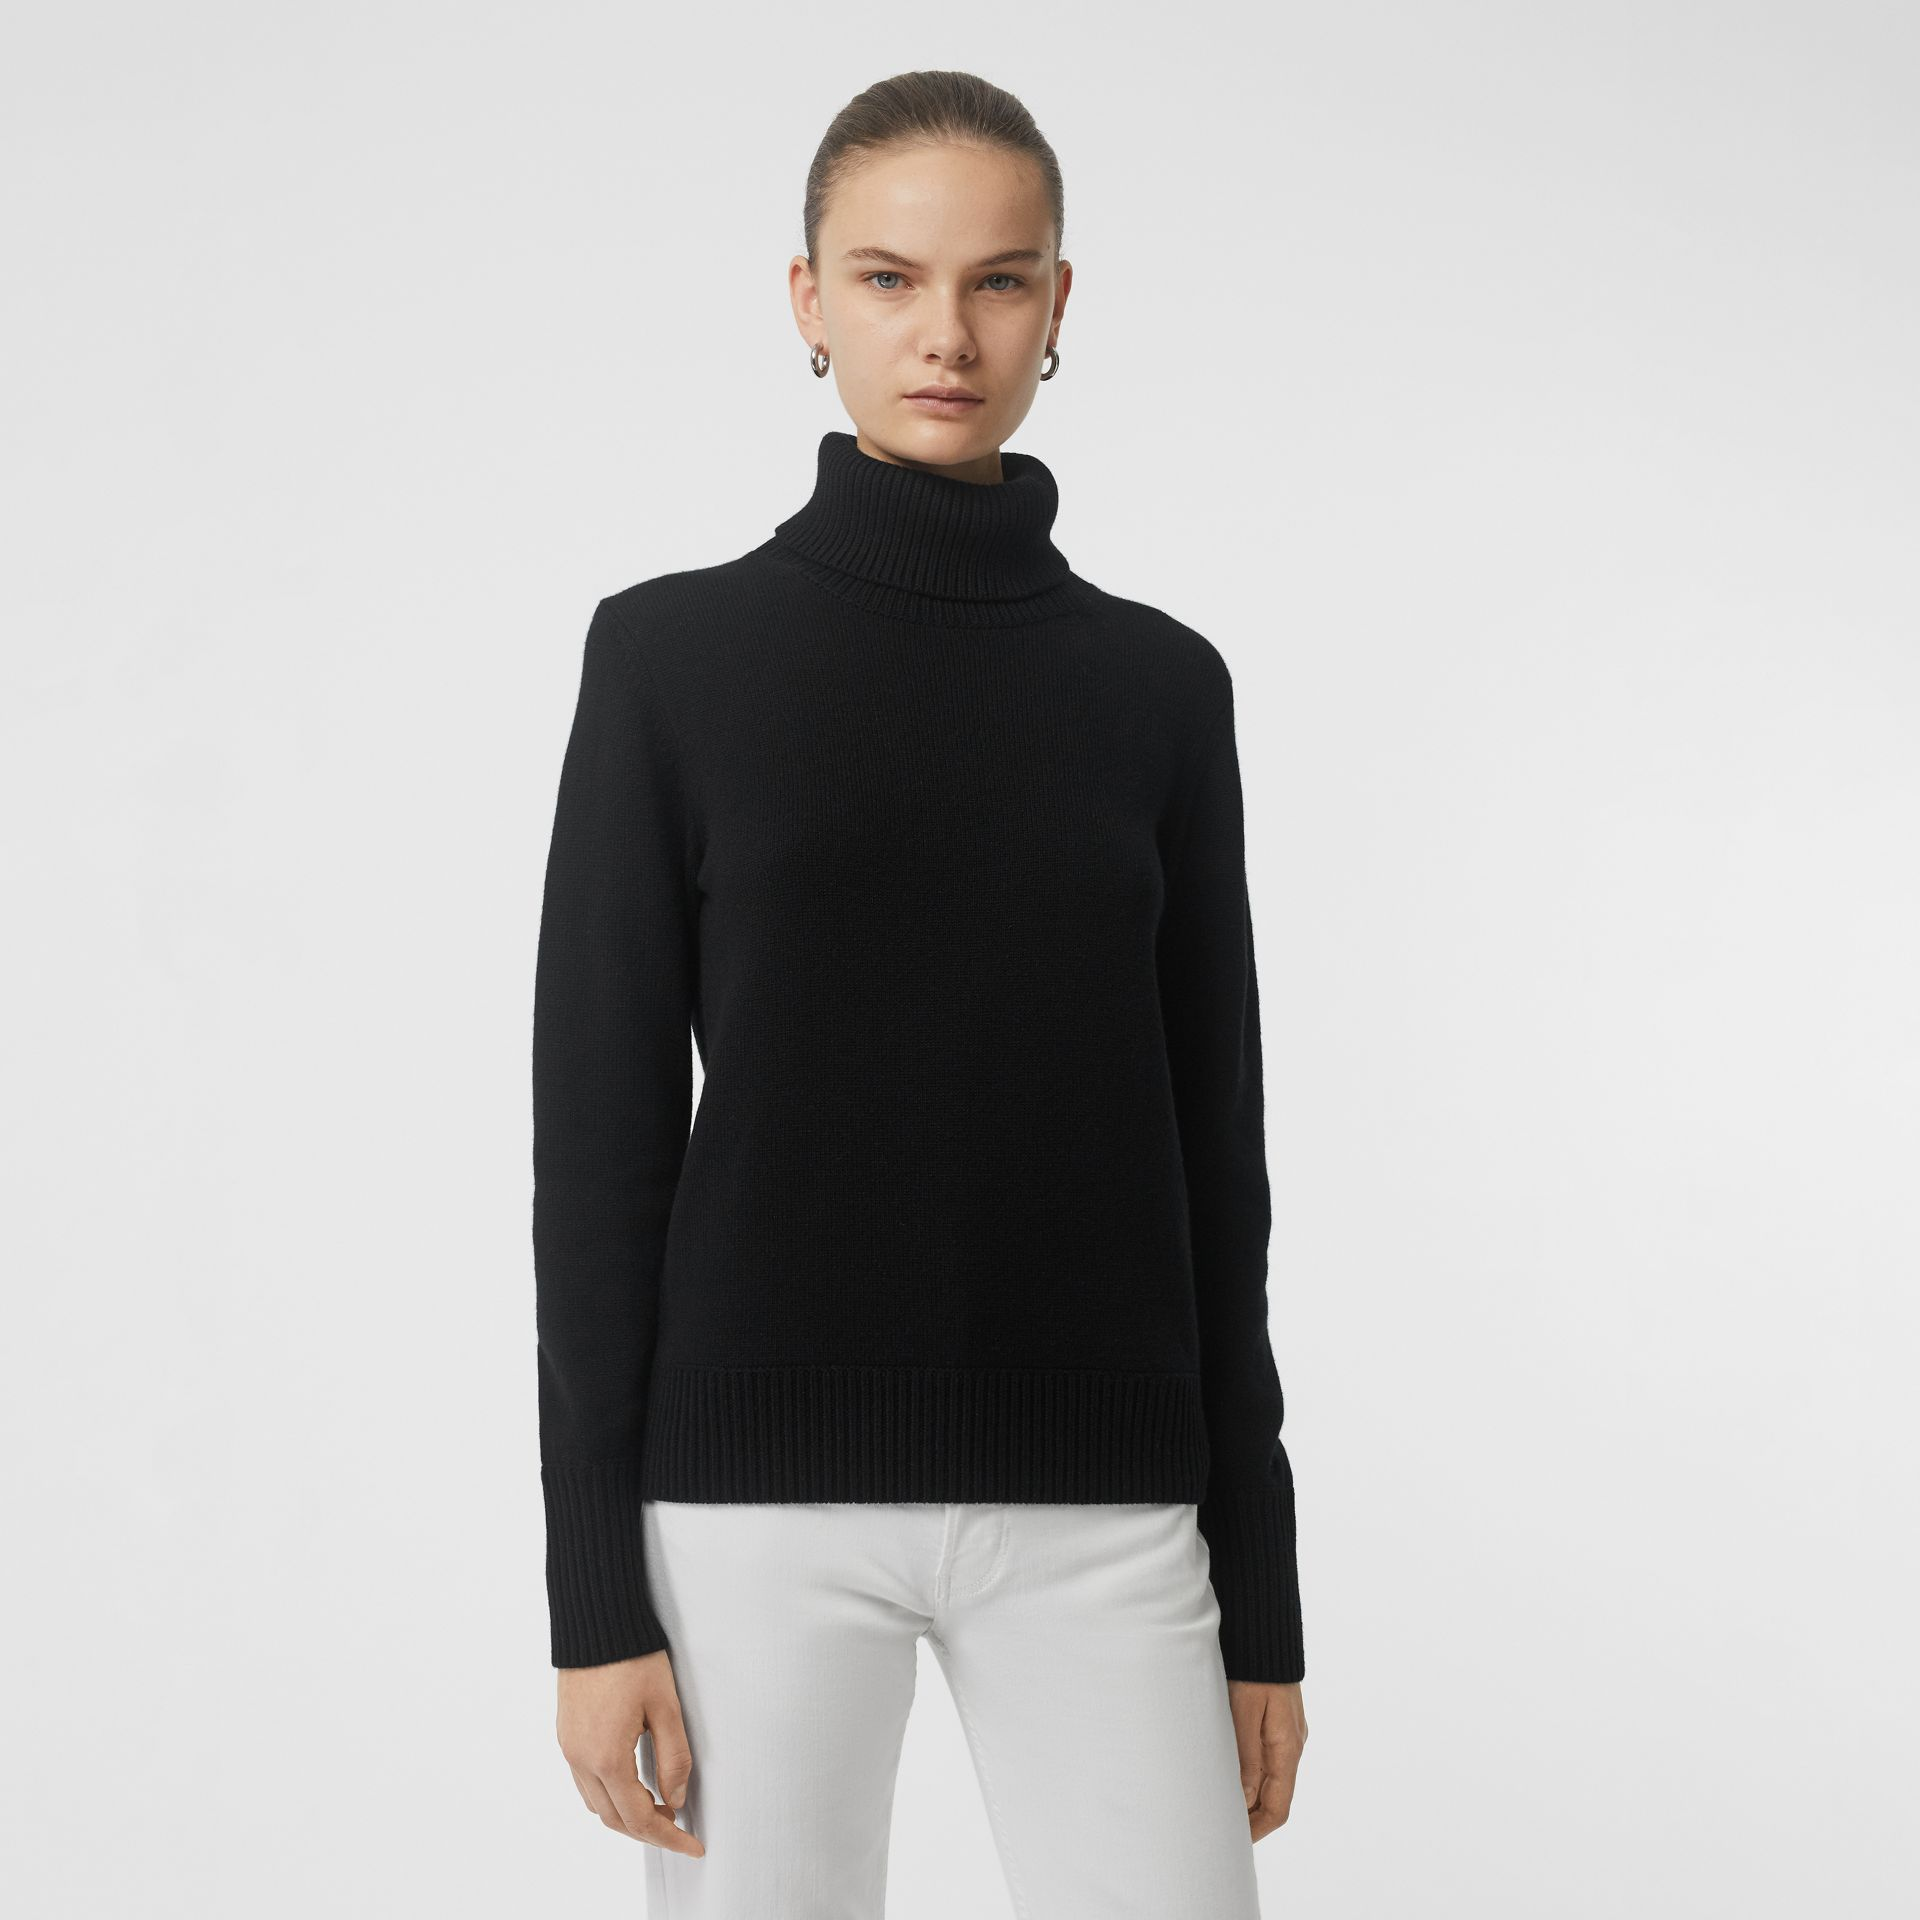 Embroidered Crest Cashmere Roll-neck Sweater in Black - Women | Burberry Singapore - gallery image 0